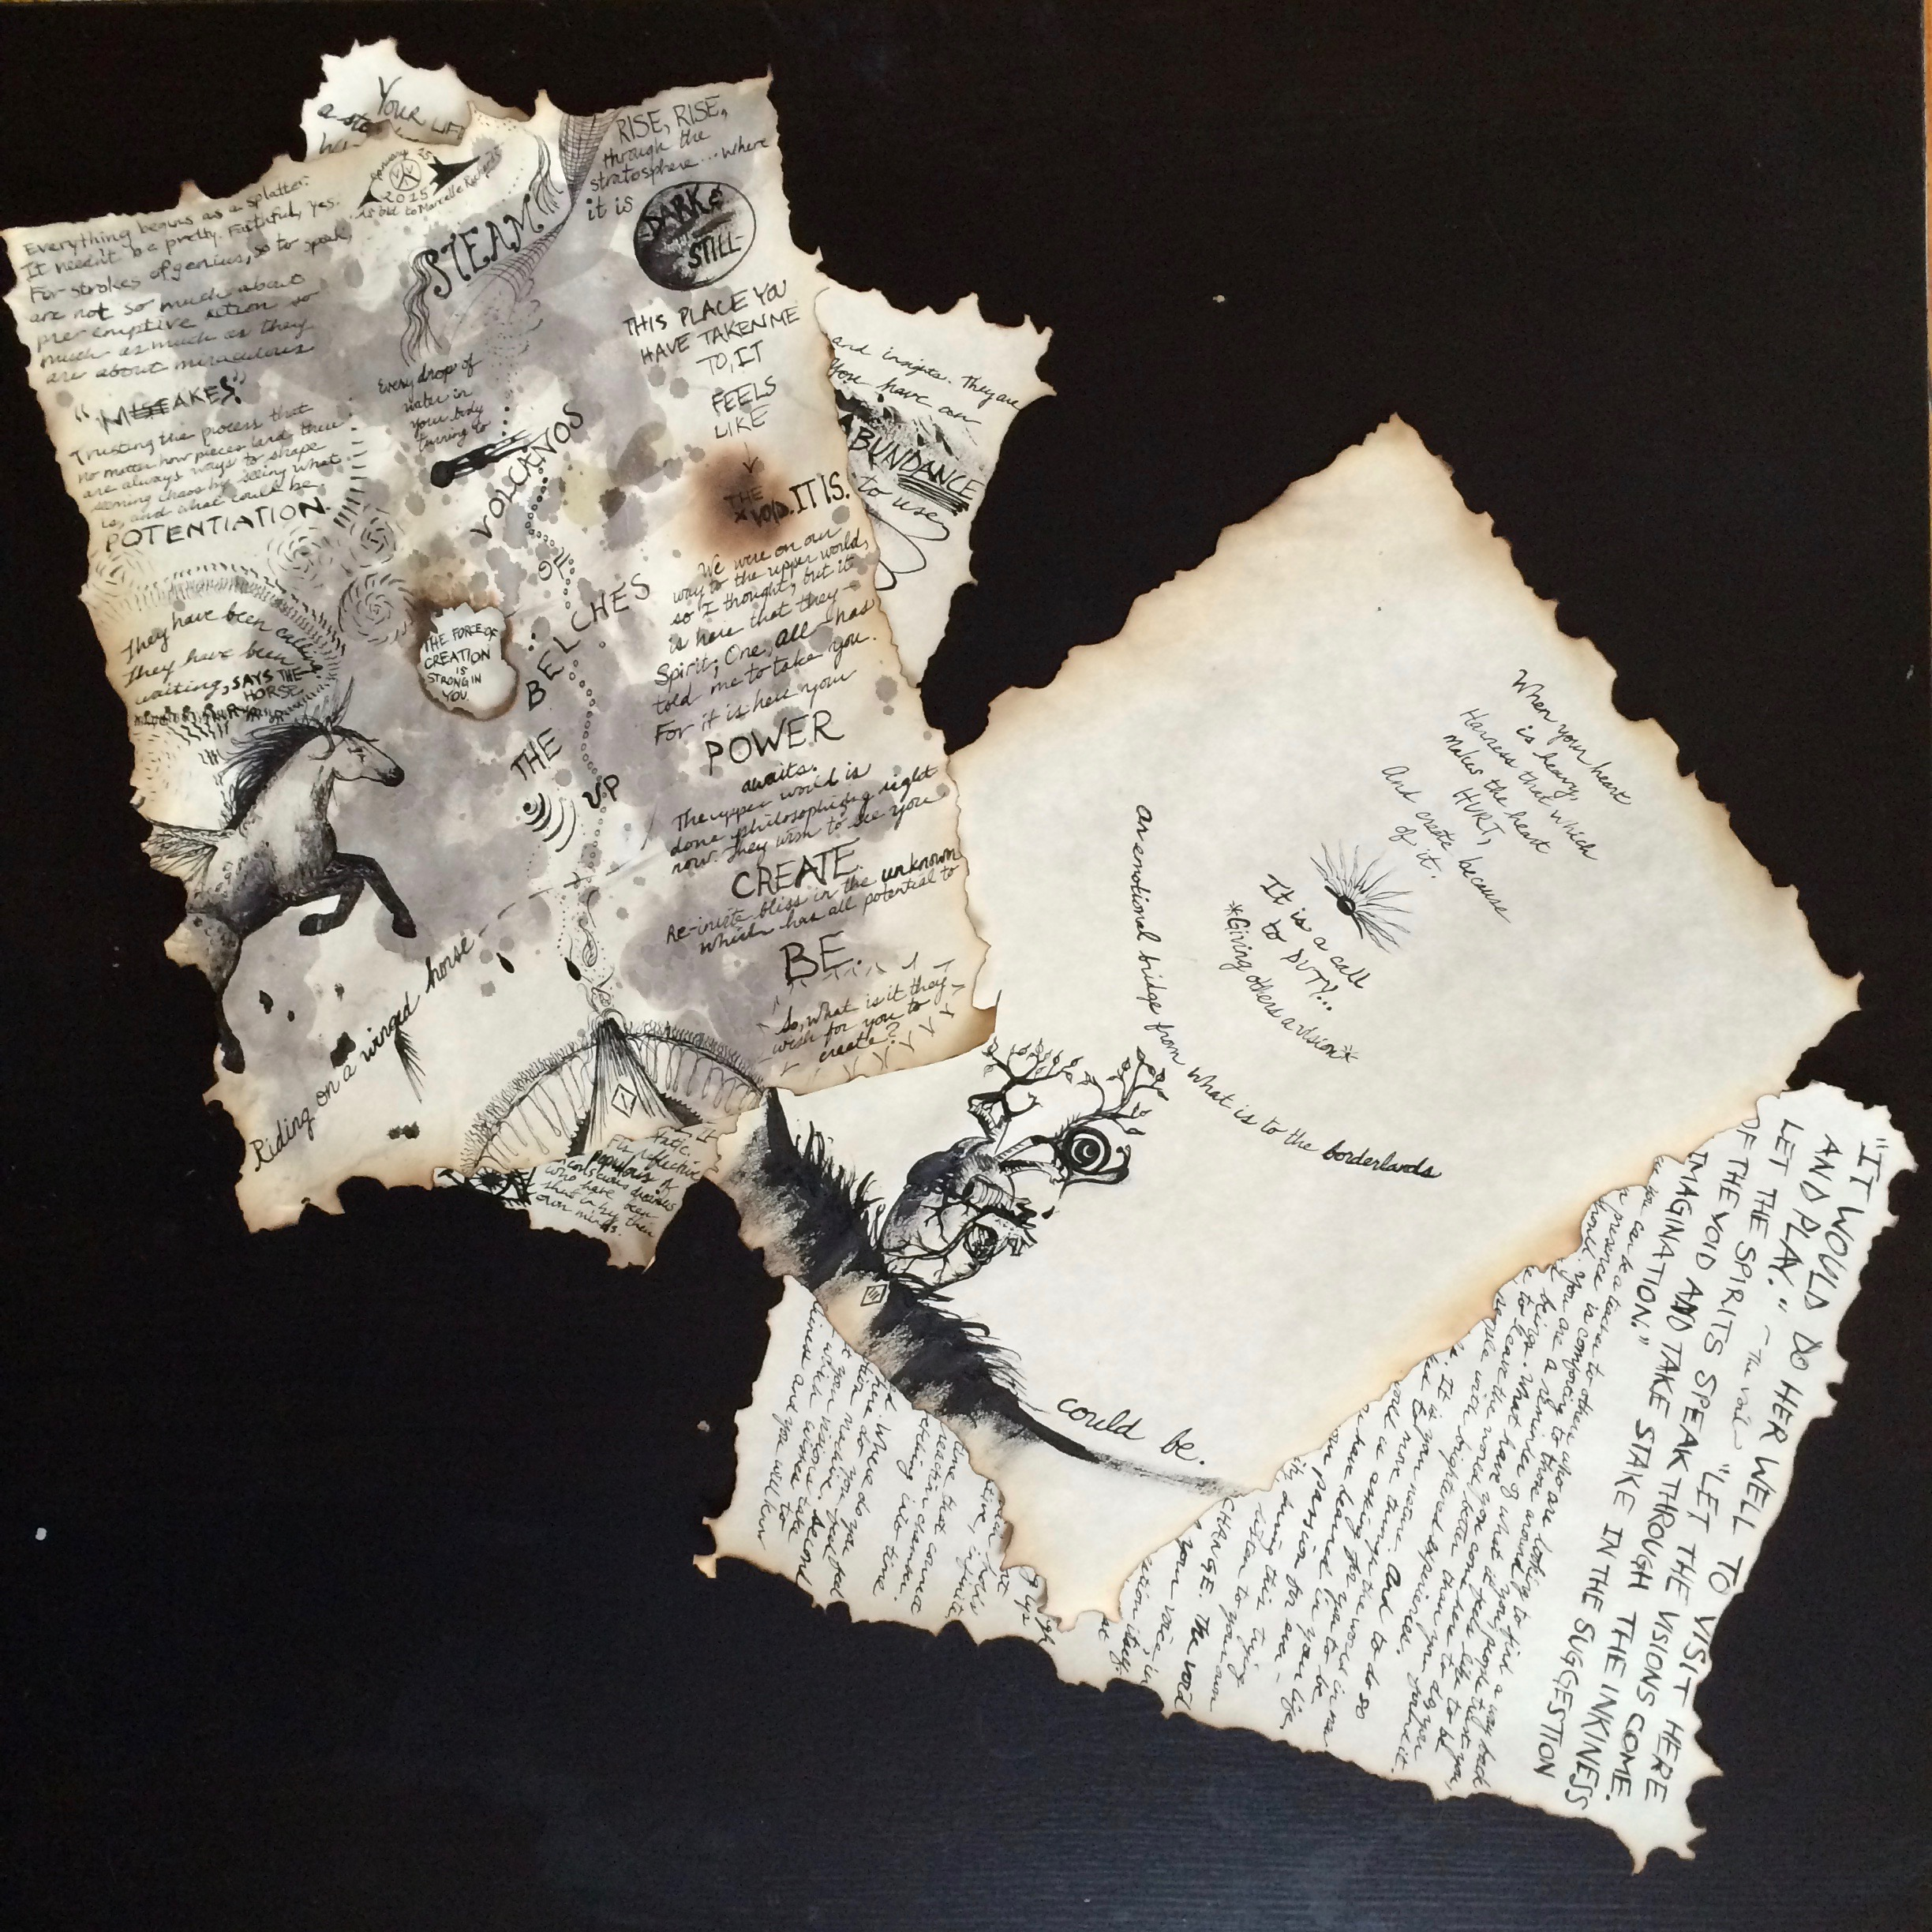 Image description: Four sheets of parchment paper with burned edges, cursive and block writing, including drawings of a horse and an anatomical heart.